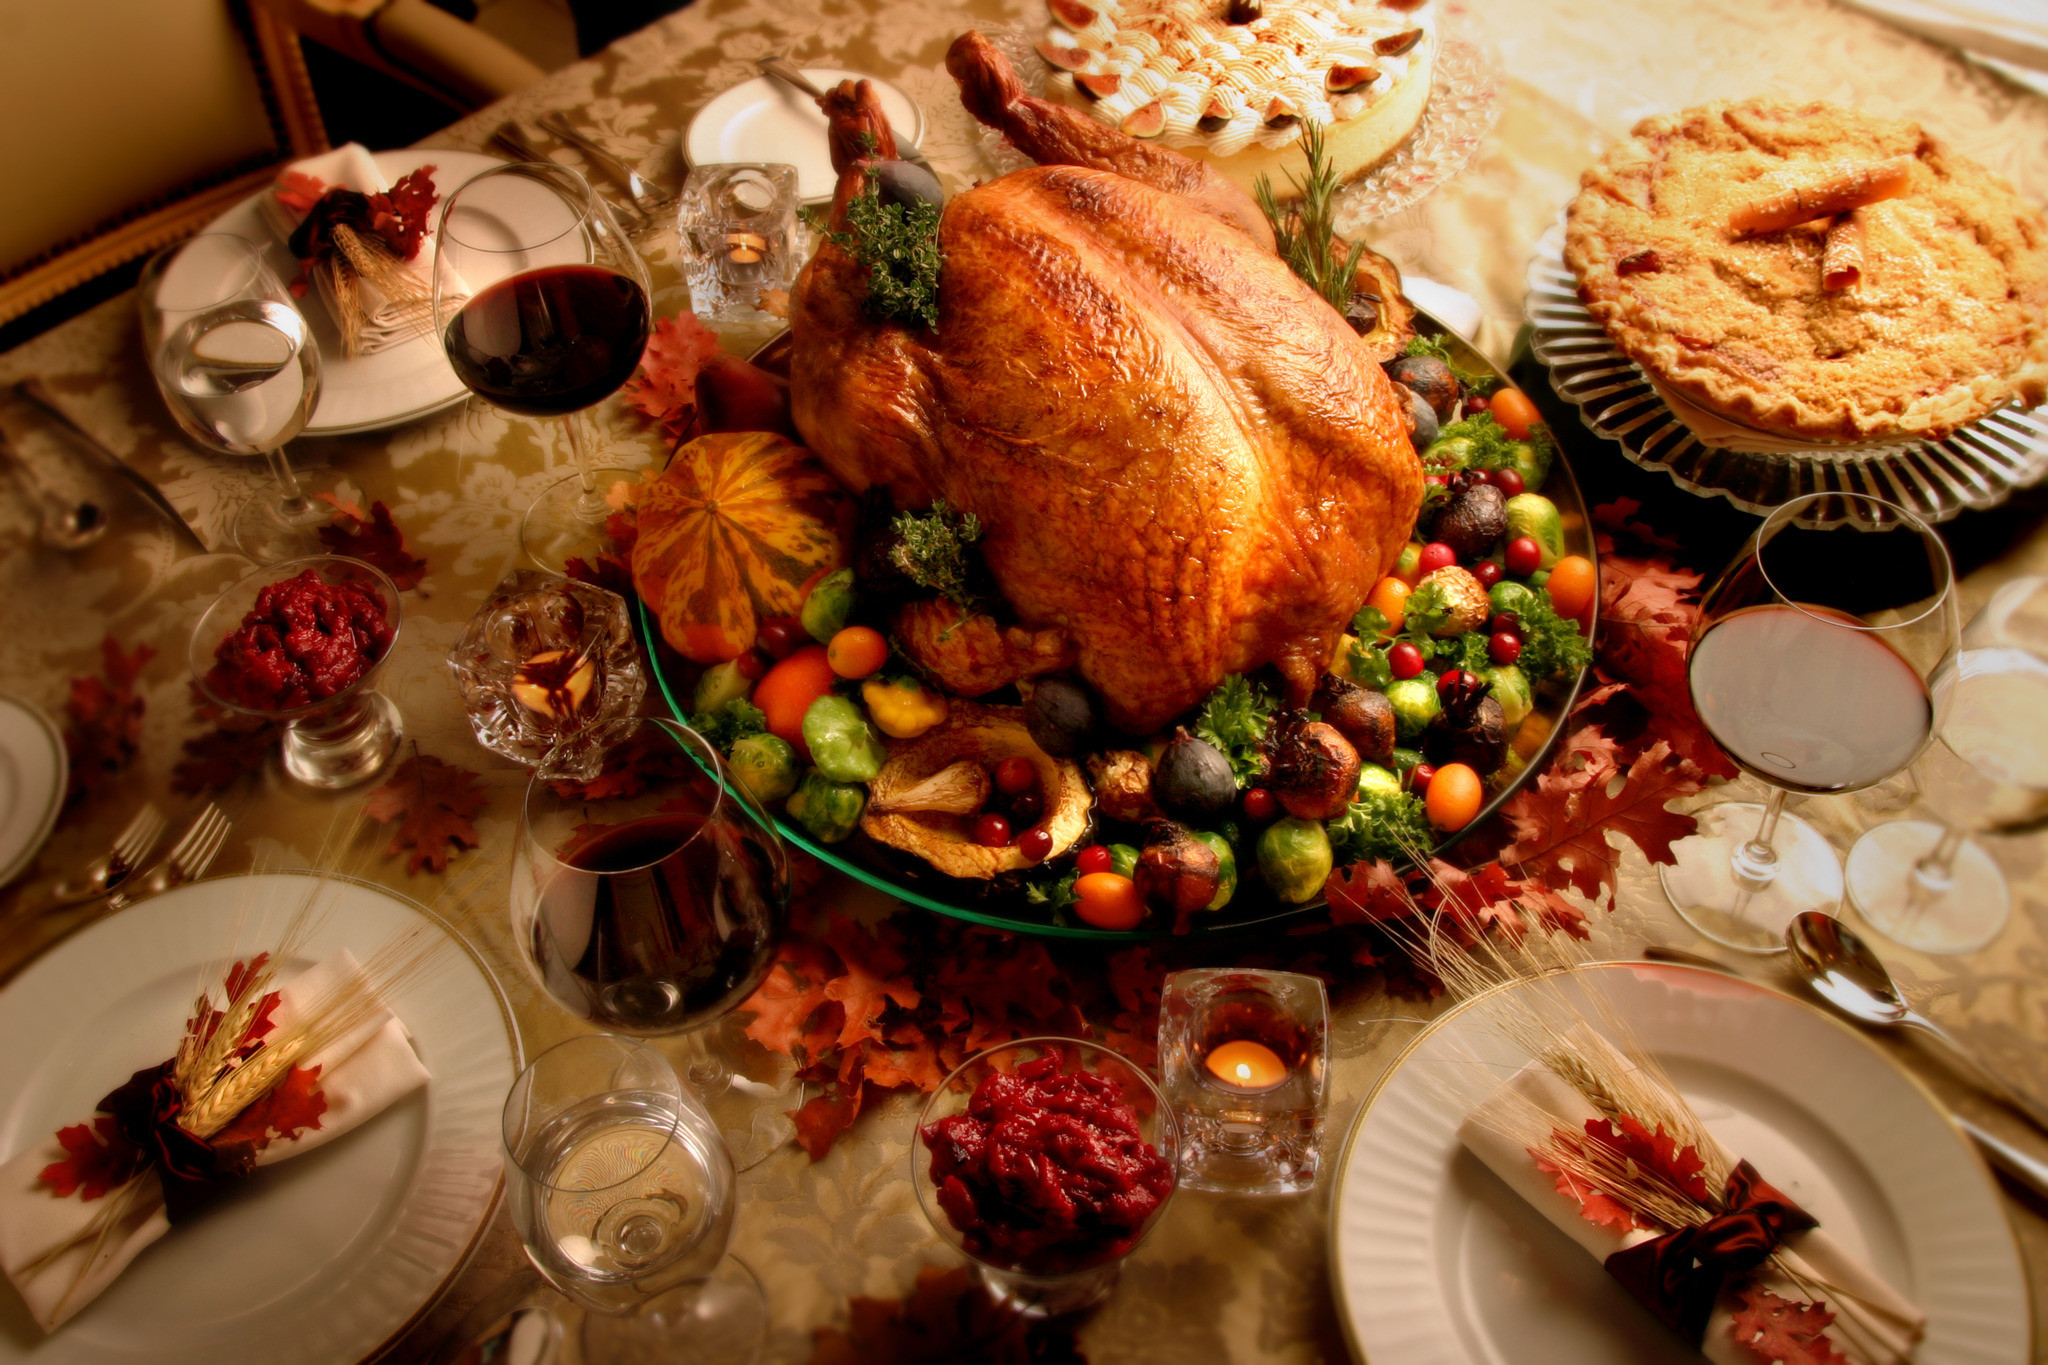 Thanksgiving Dinner To Go 2019  November 2019 Events Calendar for Los Angeles